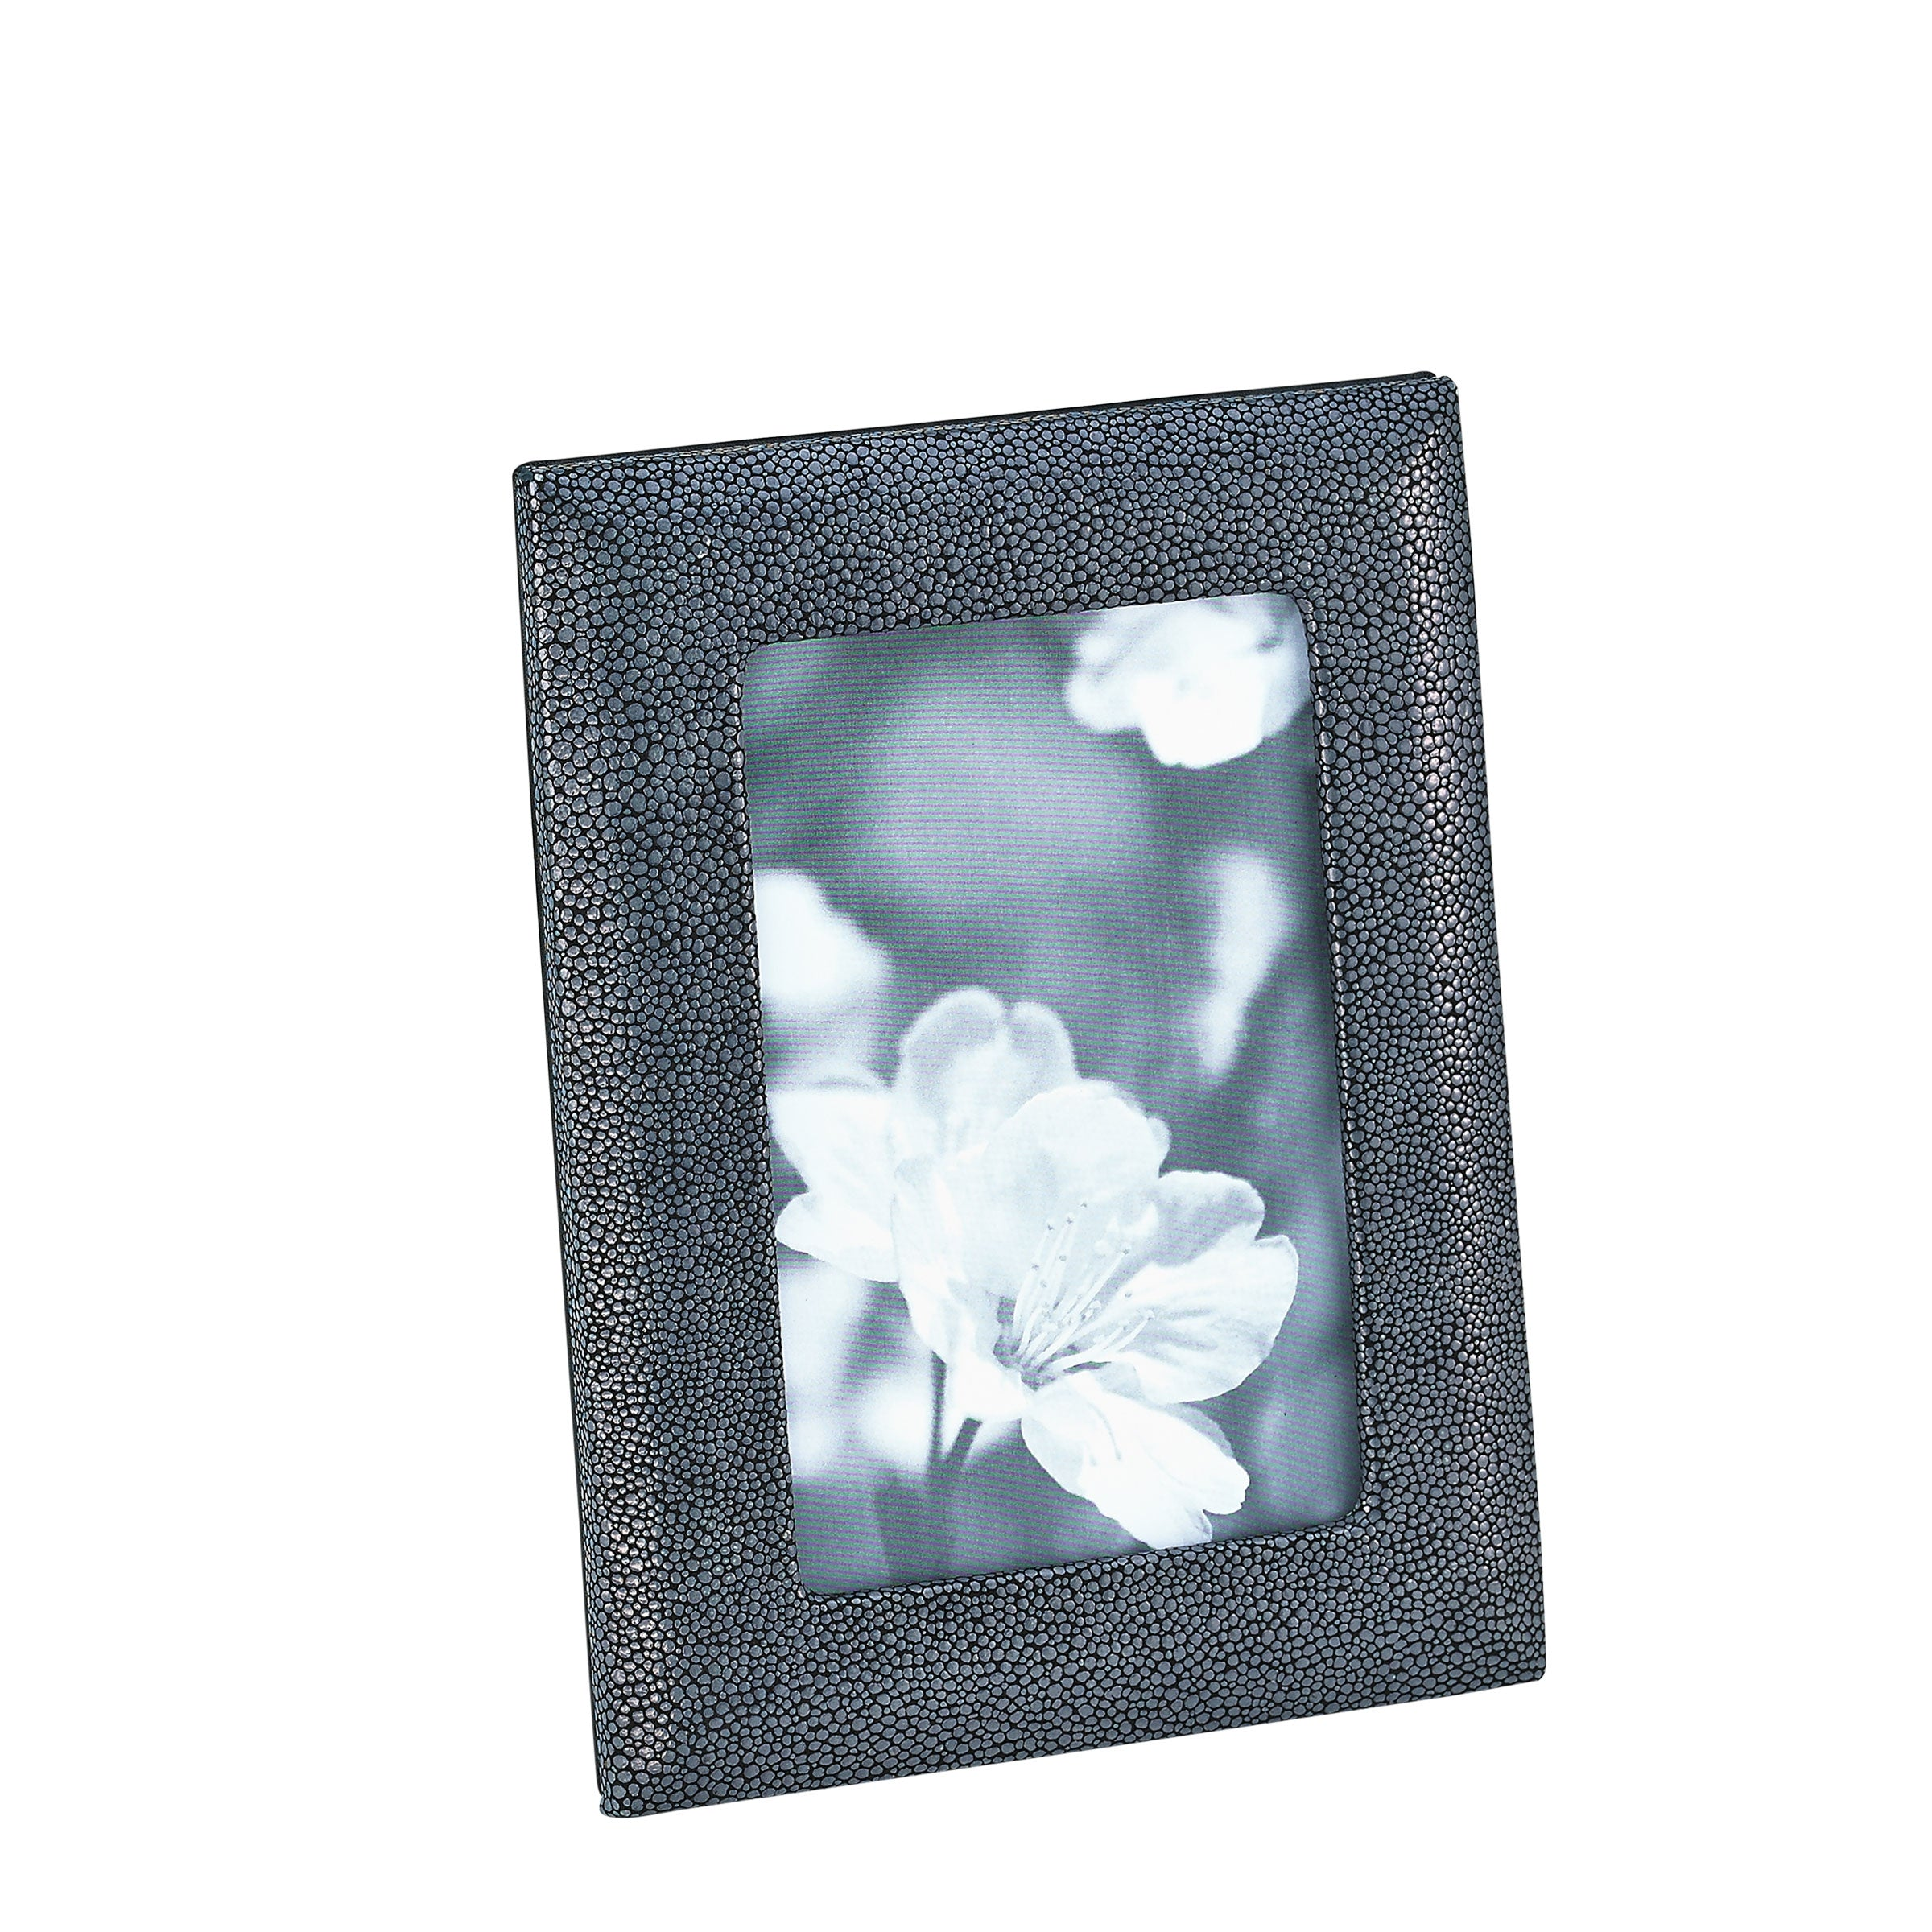 Embossed Shagreen Leather Picture Frame, 4x6 Inches